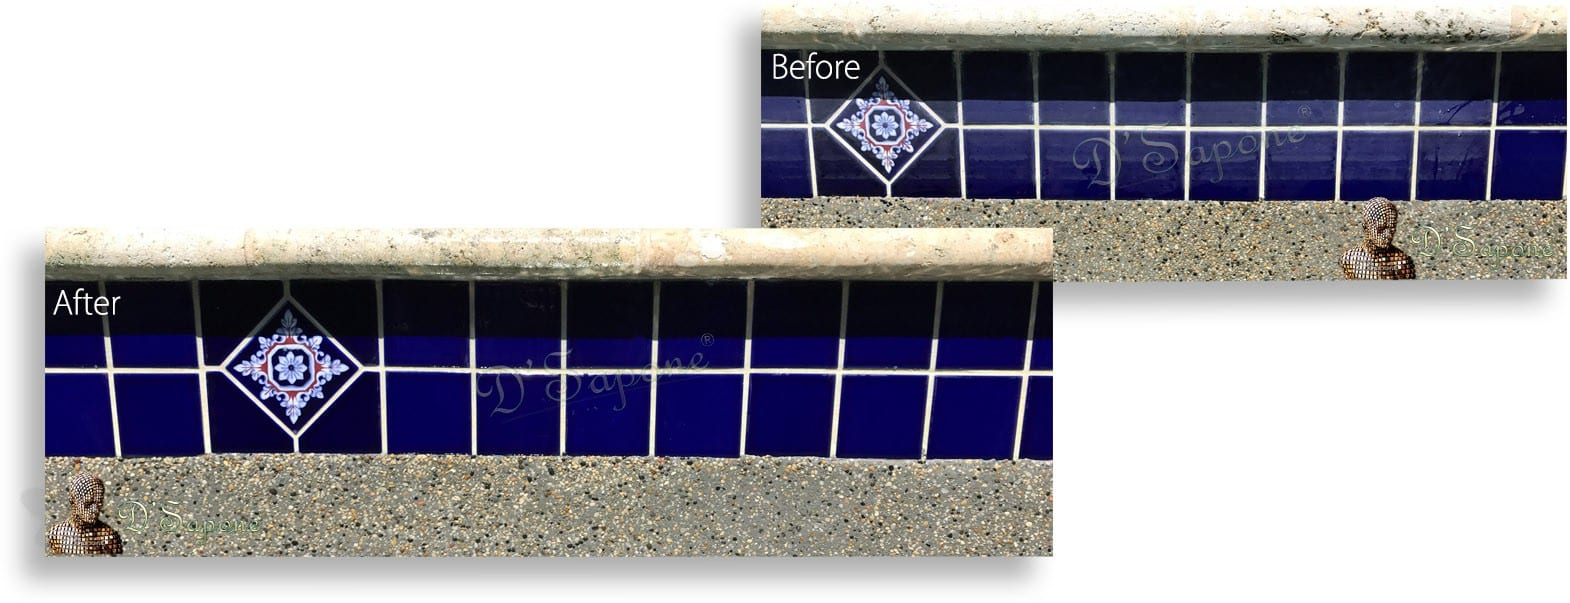 Efflorescence removal tile Minerals stone pool Before After